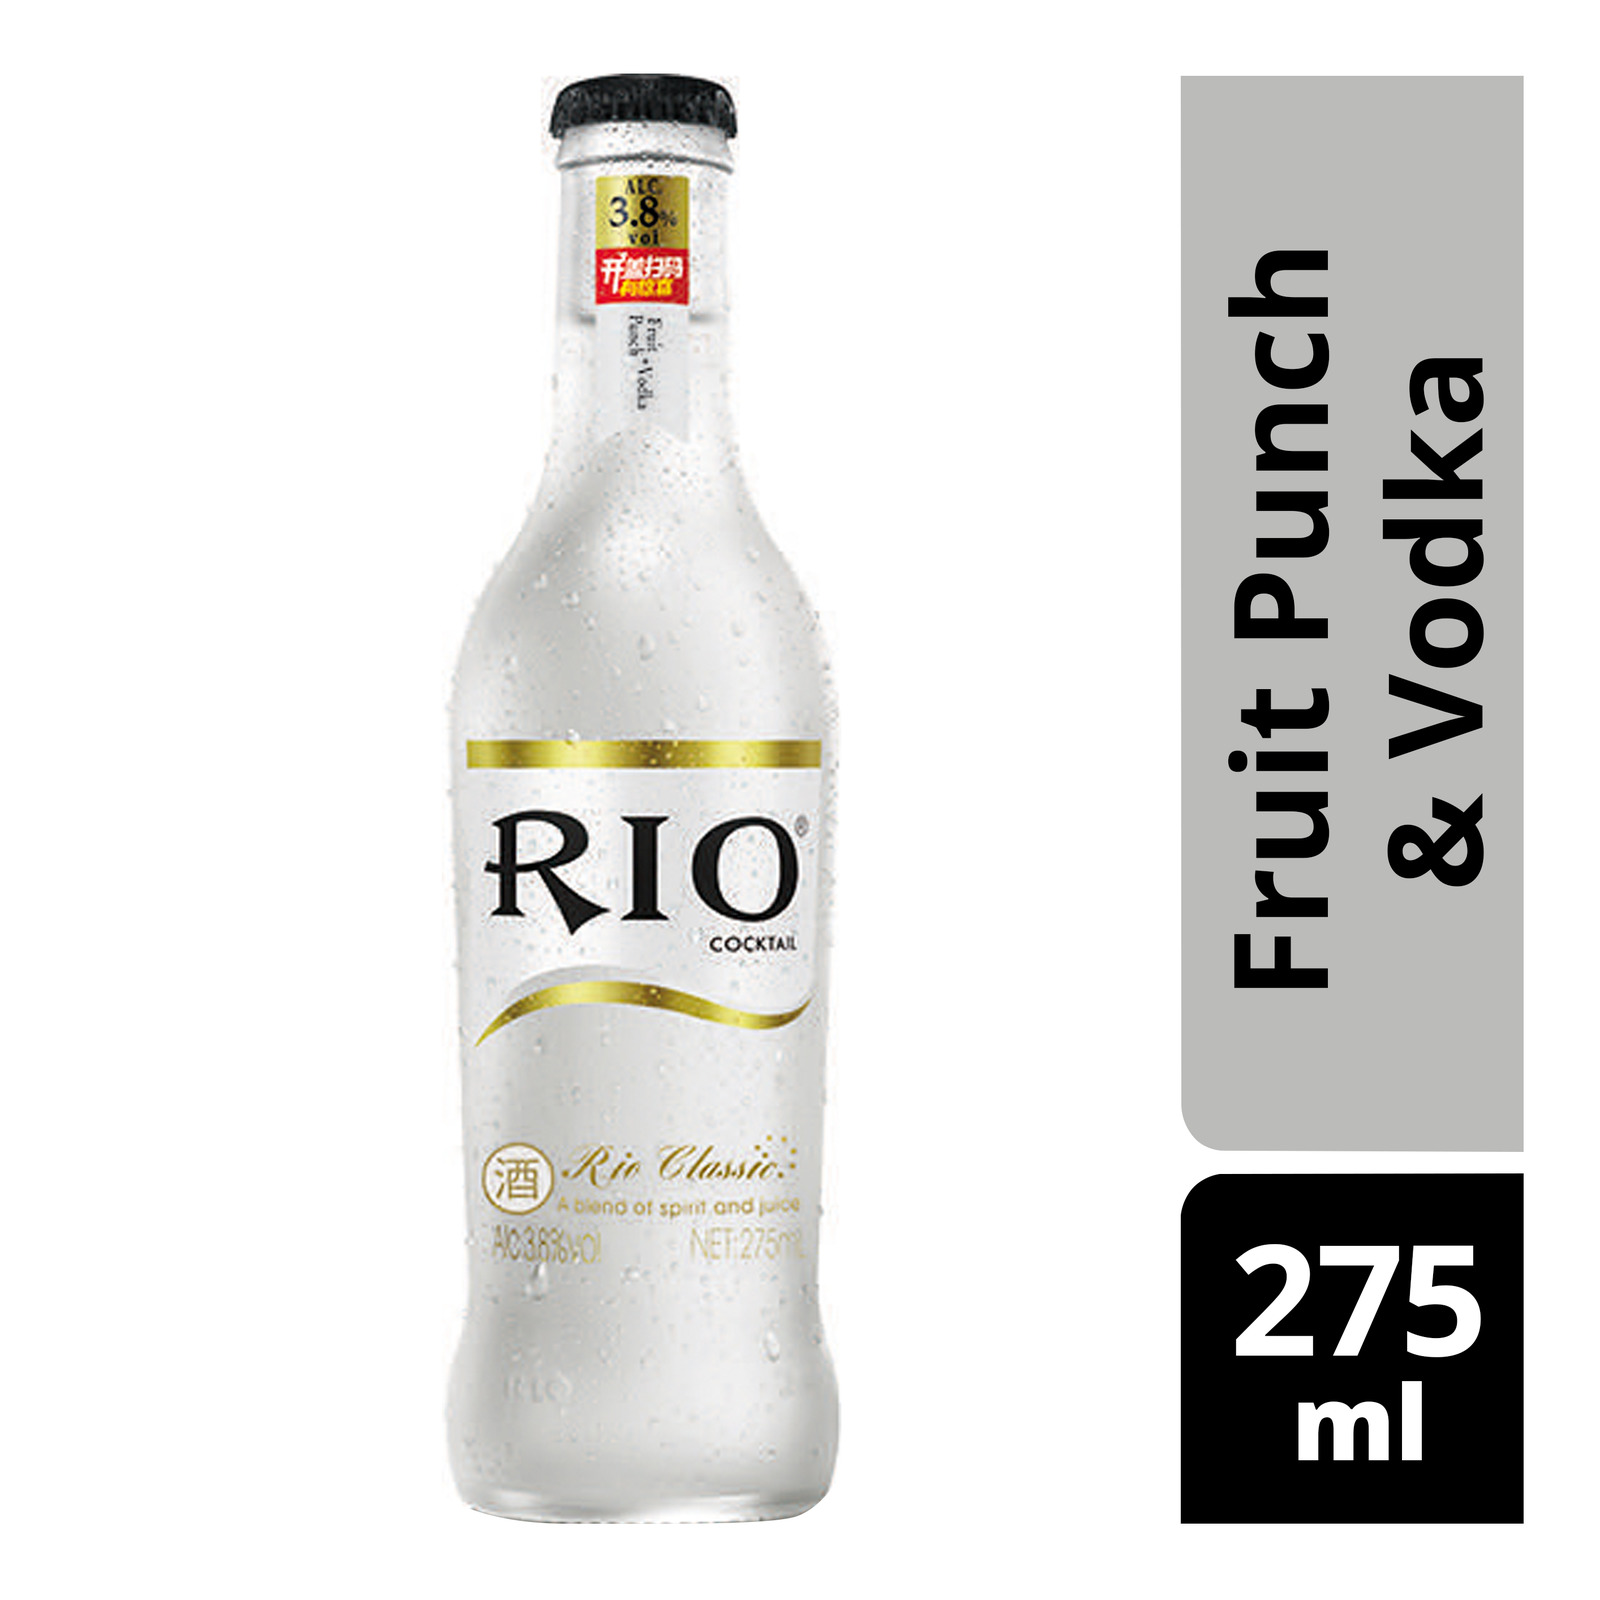 Rio Bottle Cocktail - Fruit Punch & Vodka